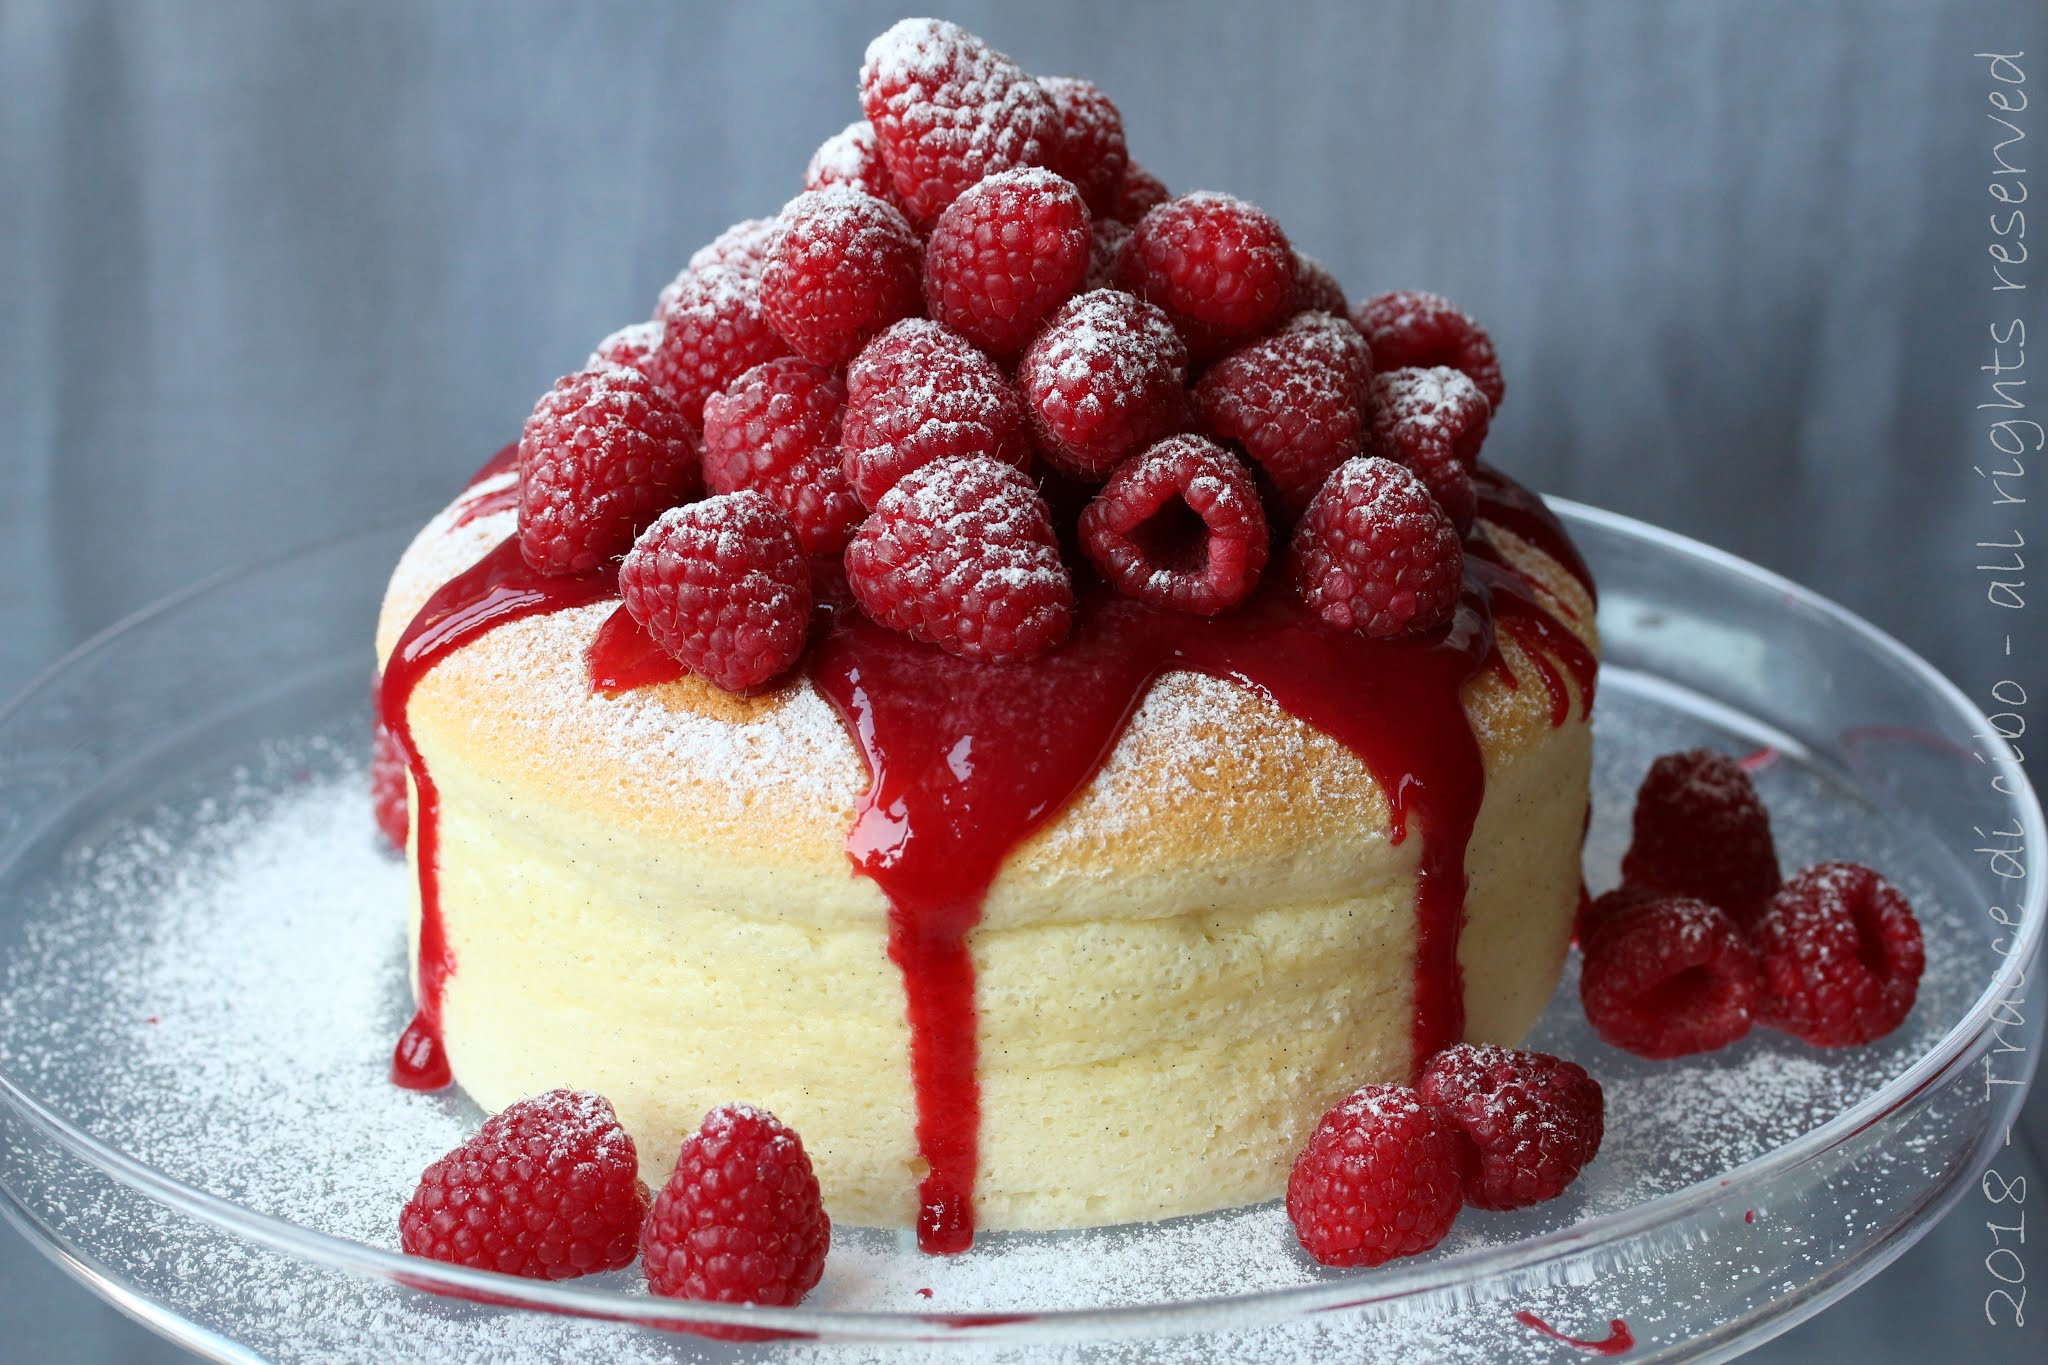 jiggly cake, japanese cheesecake